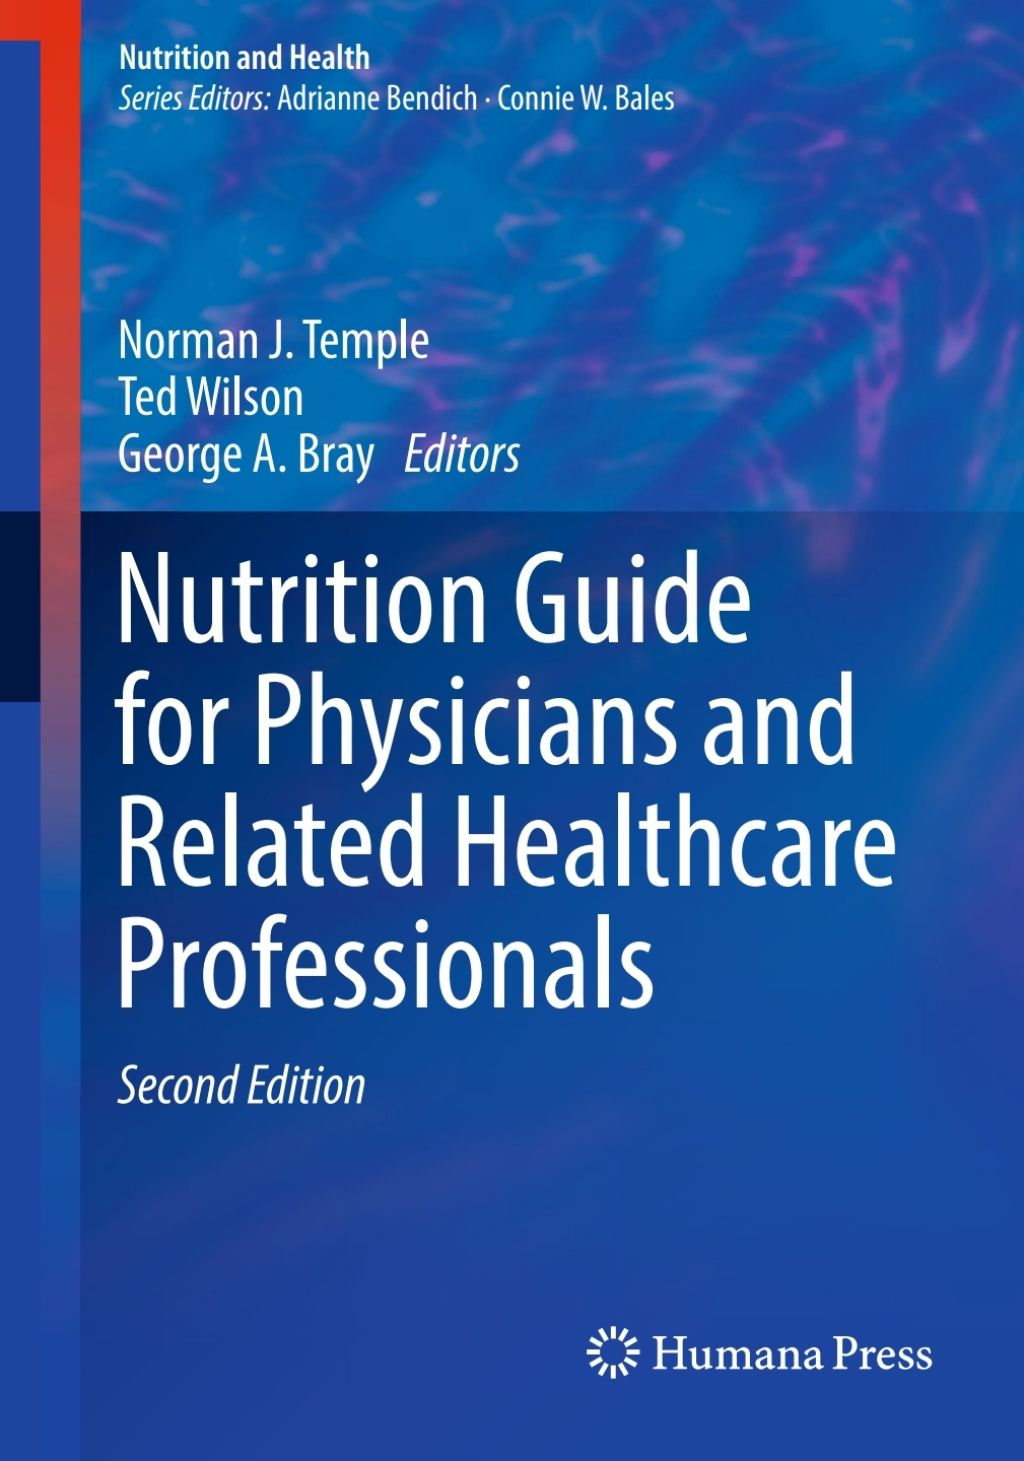 Nutrition Guide for Physicians and Related Healthcare